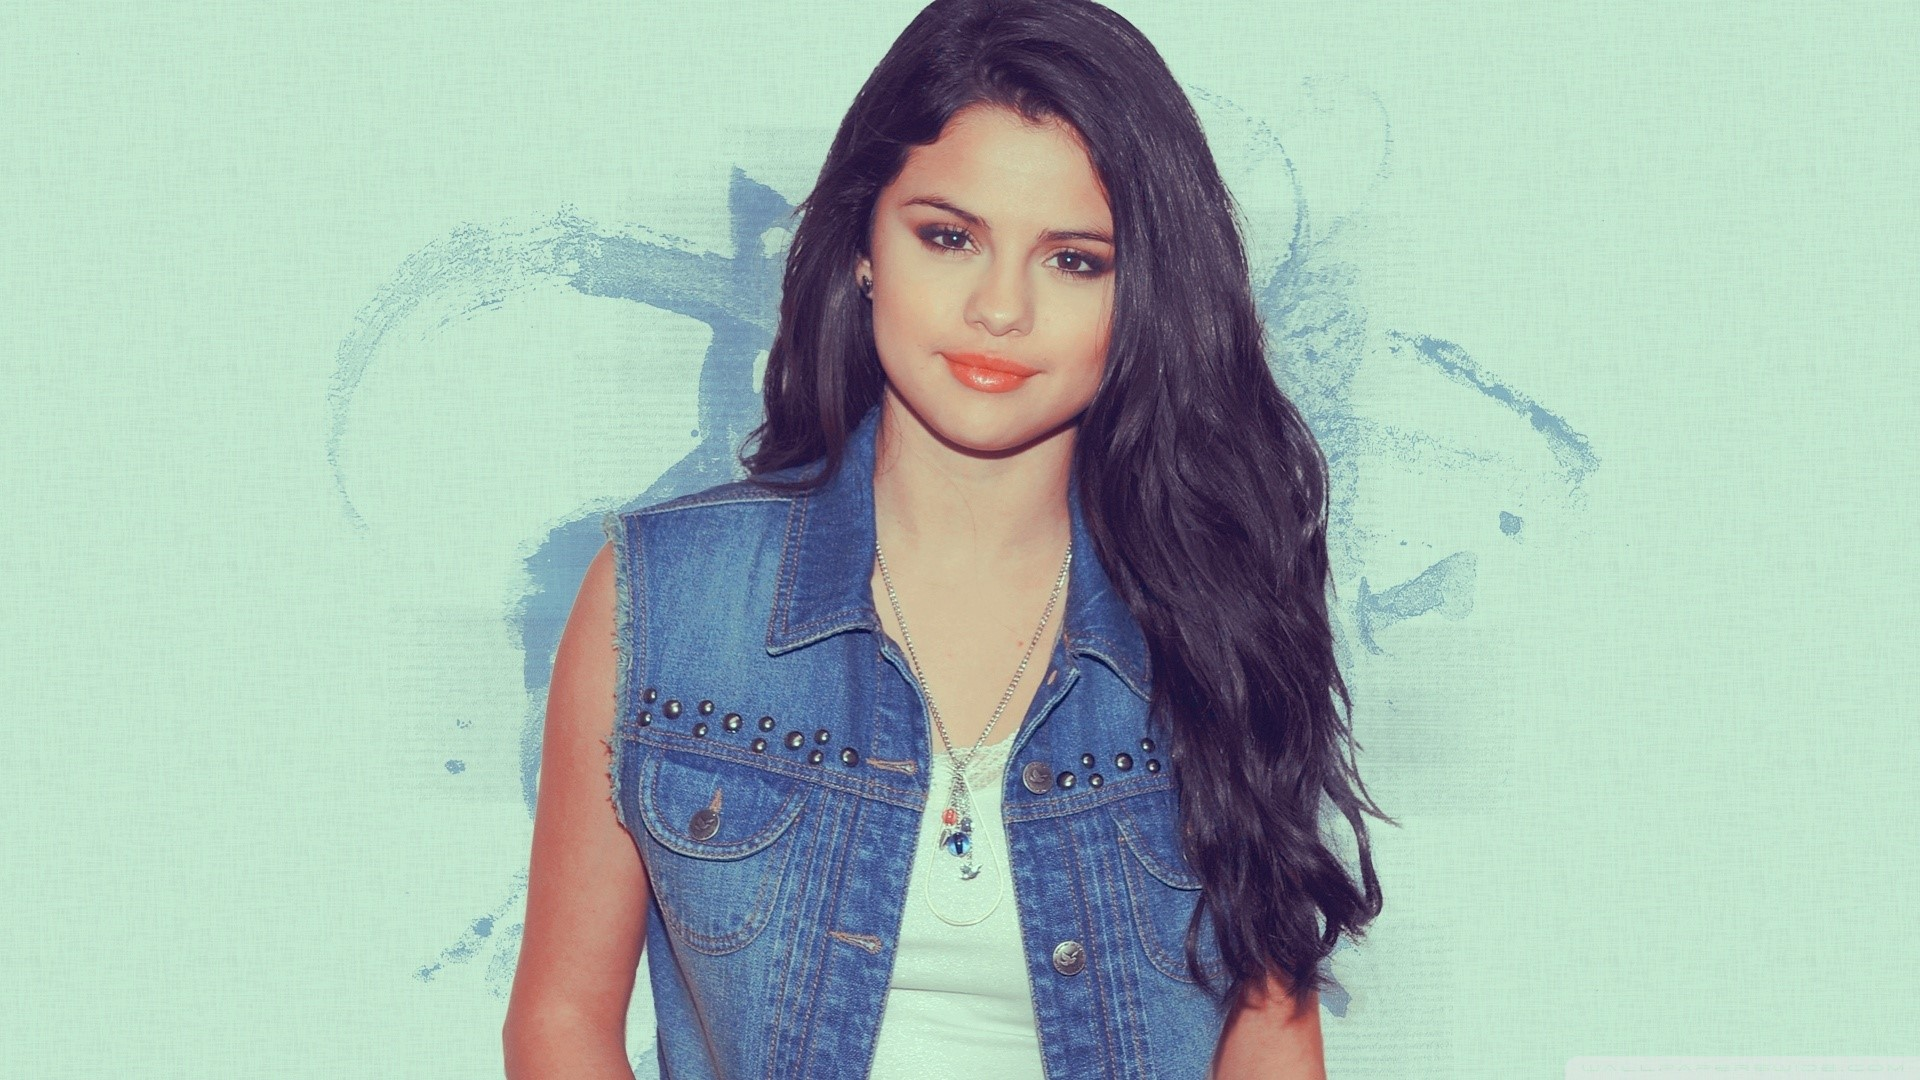 Selena Gomez Wallpapers for Computer